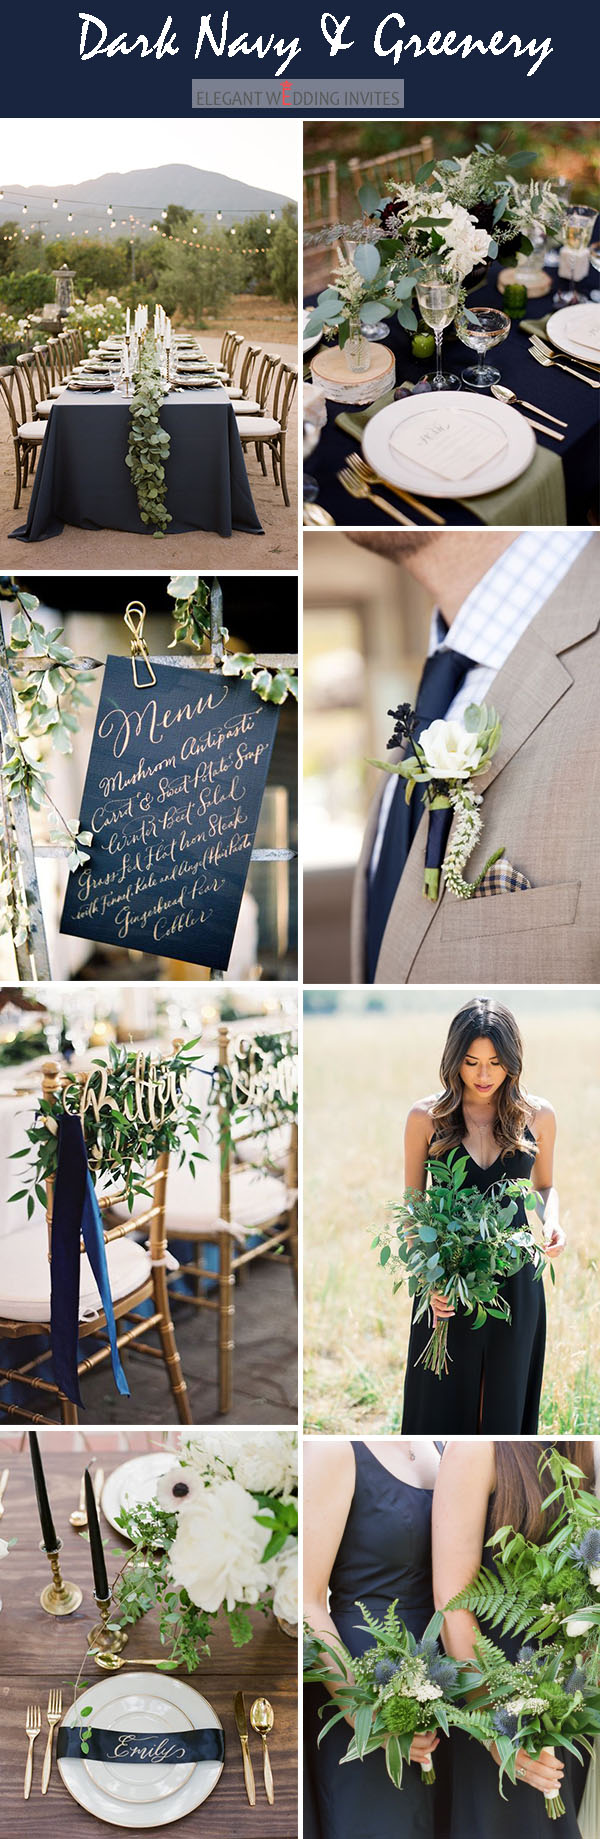 dark navy and greeenery classic wedding colors